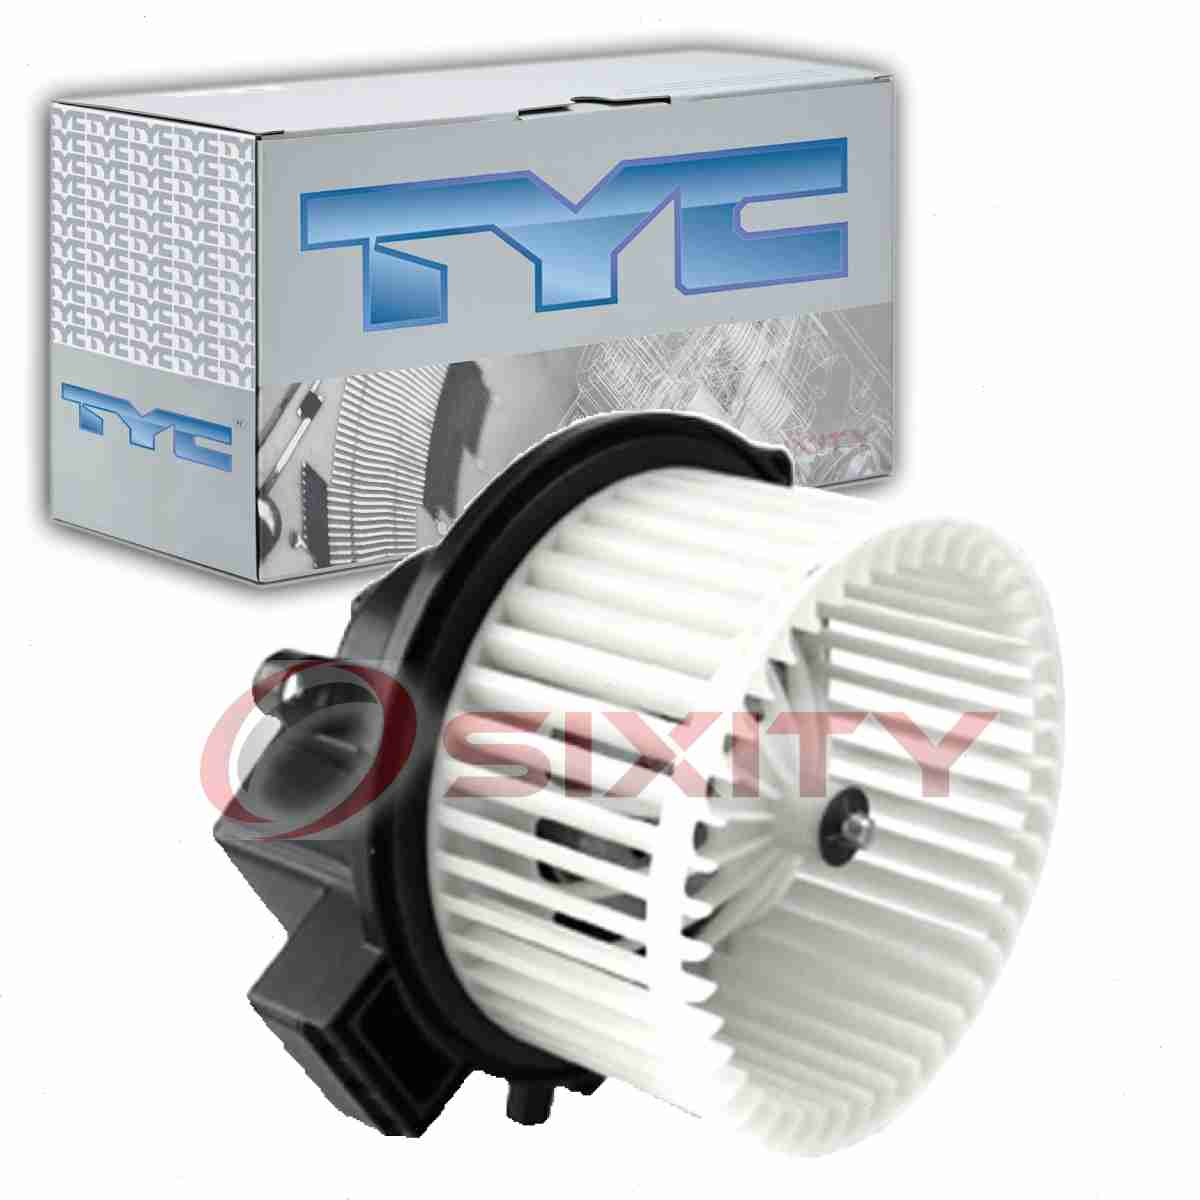 Tyc rear hvac blower motor 2001 2015 dodge grand caravan for Blower motor dodge caravan